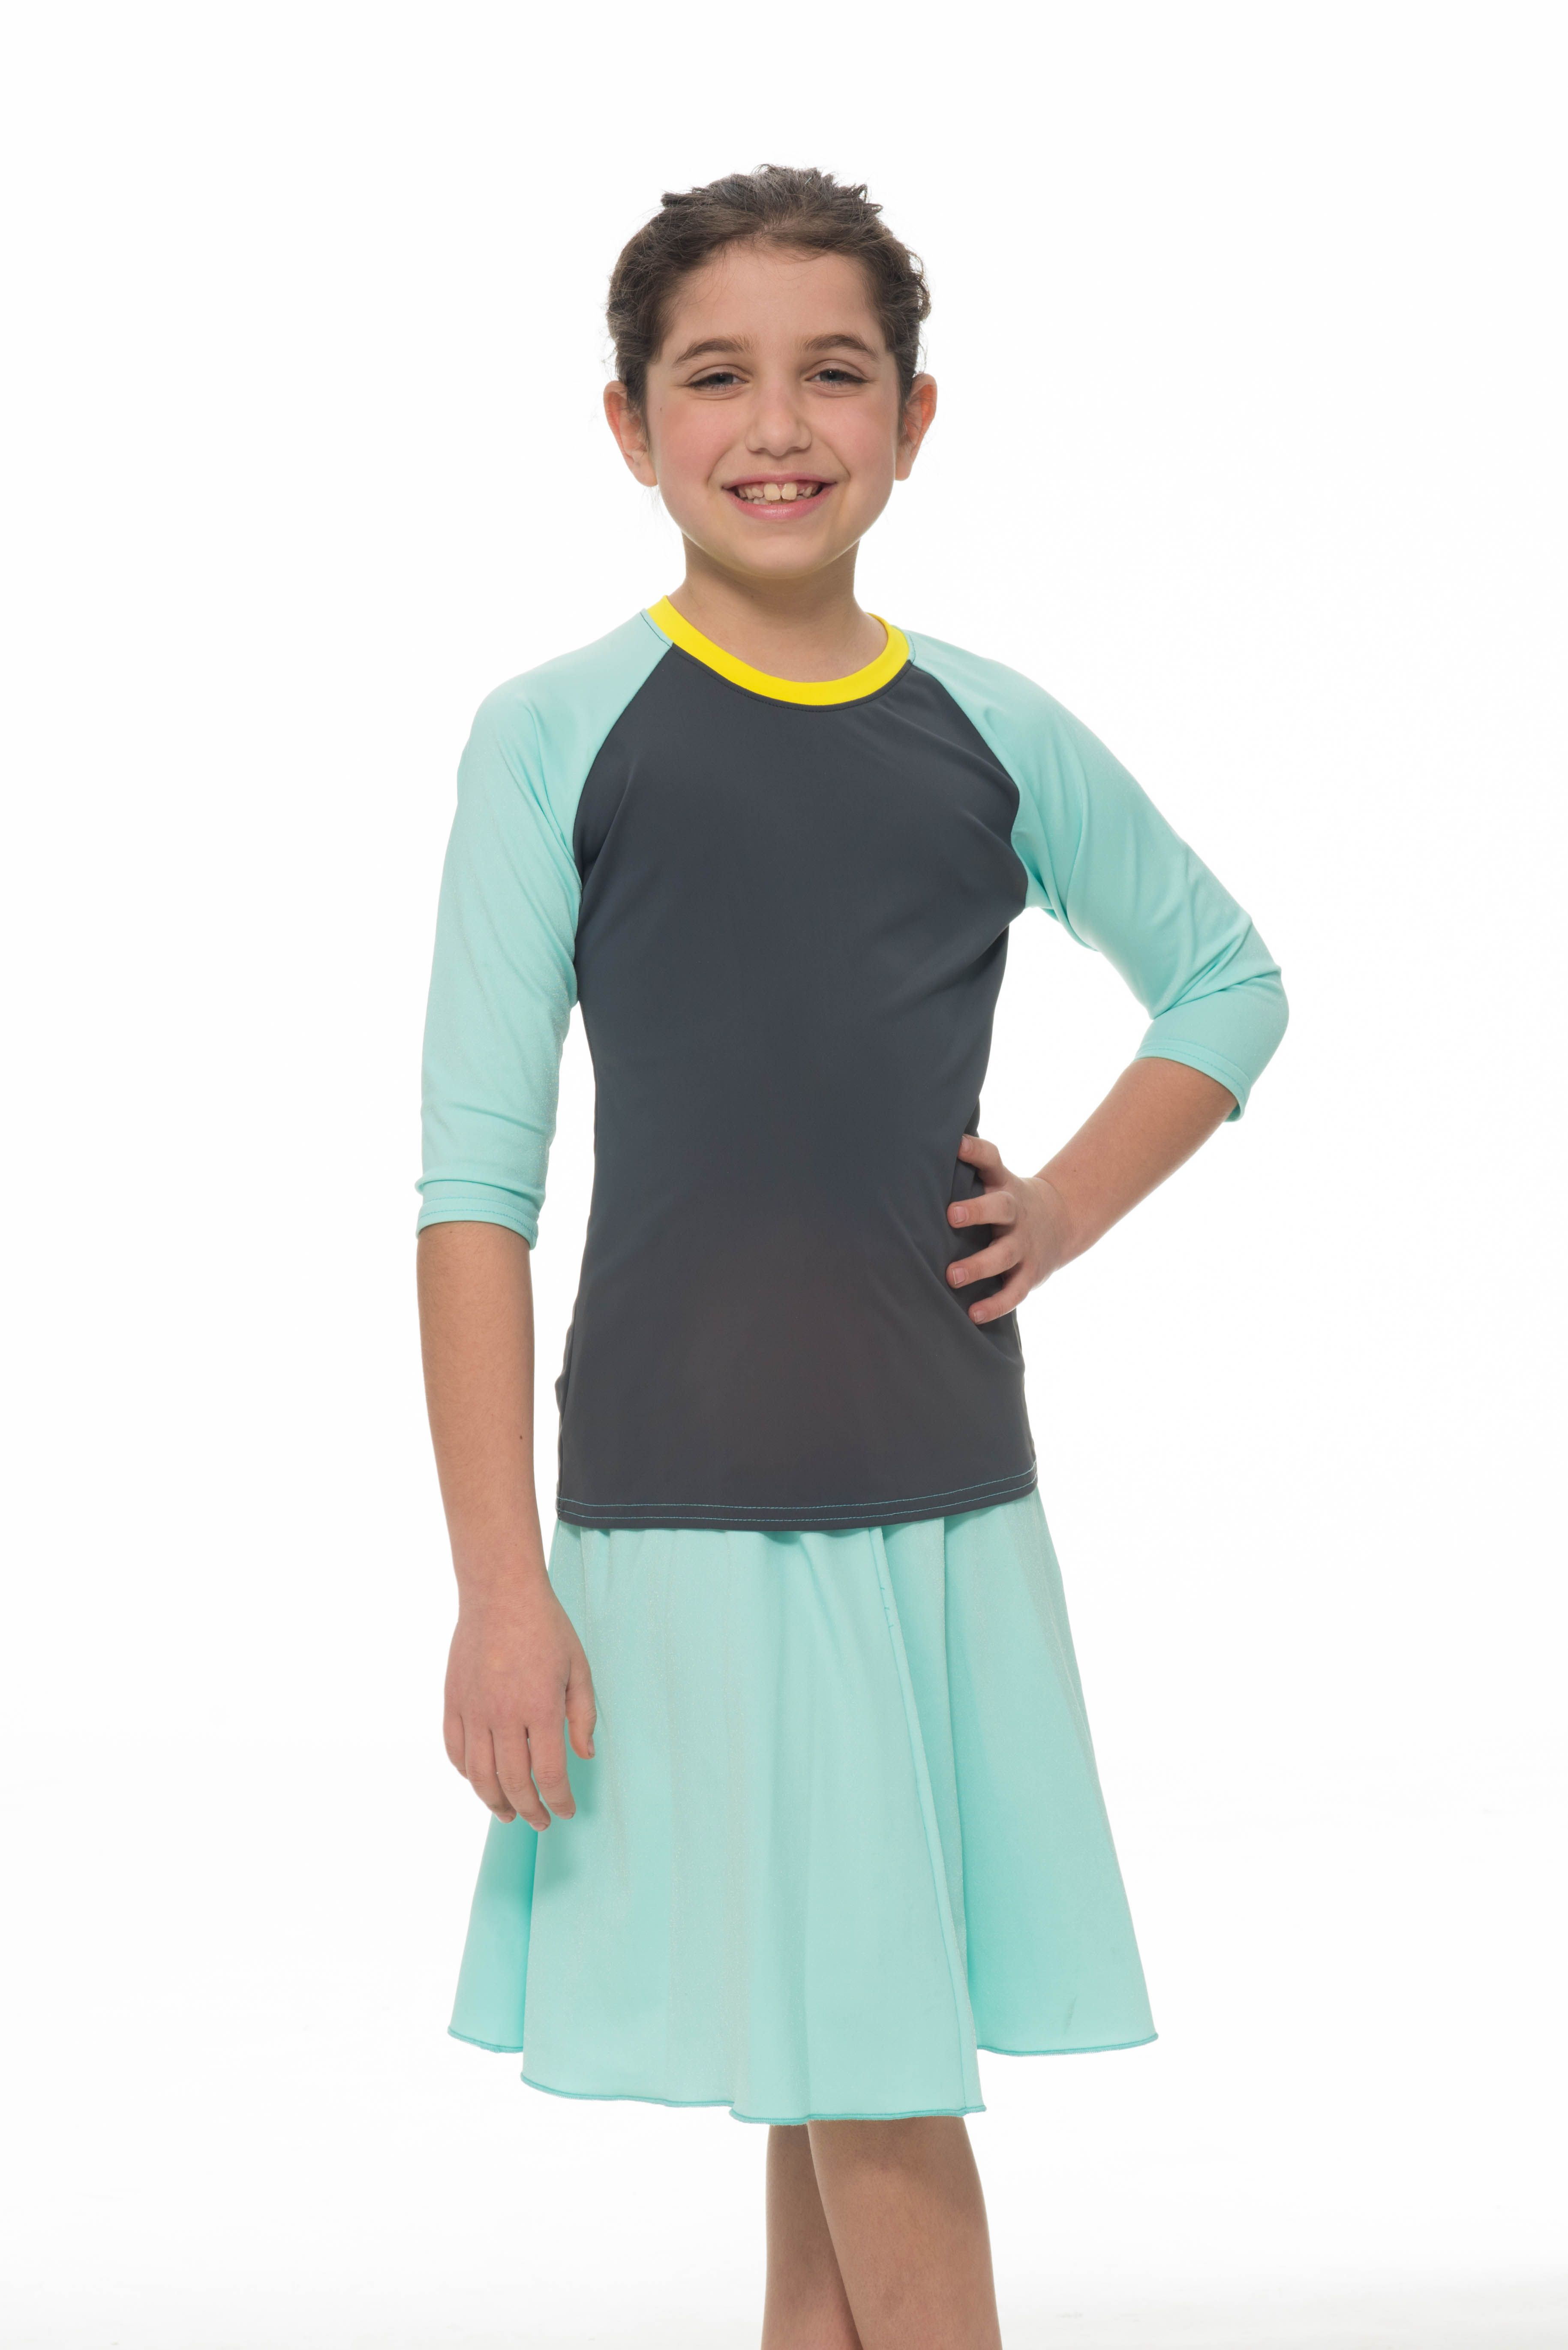 df9c846657e81 ... cutest and coolest color combos i have found online. great variations  in style options too- diff. skirts, dress, etc. Girls Aqua Baseball FLAIR  Swim Set